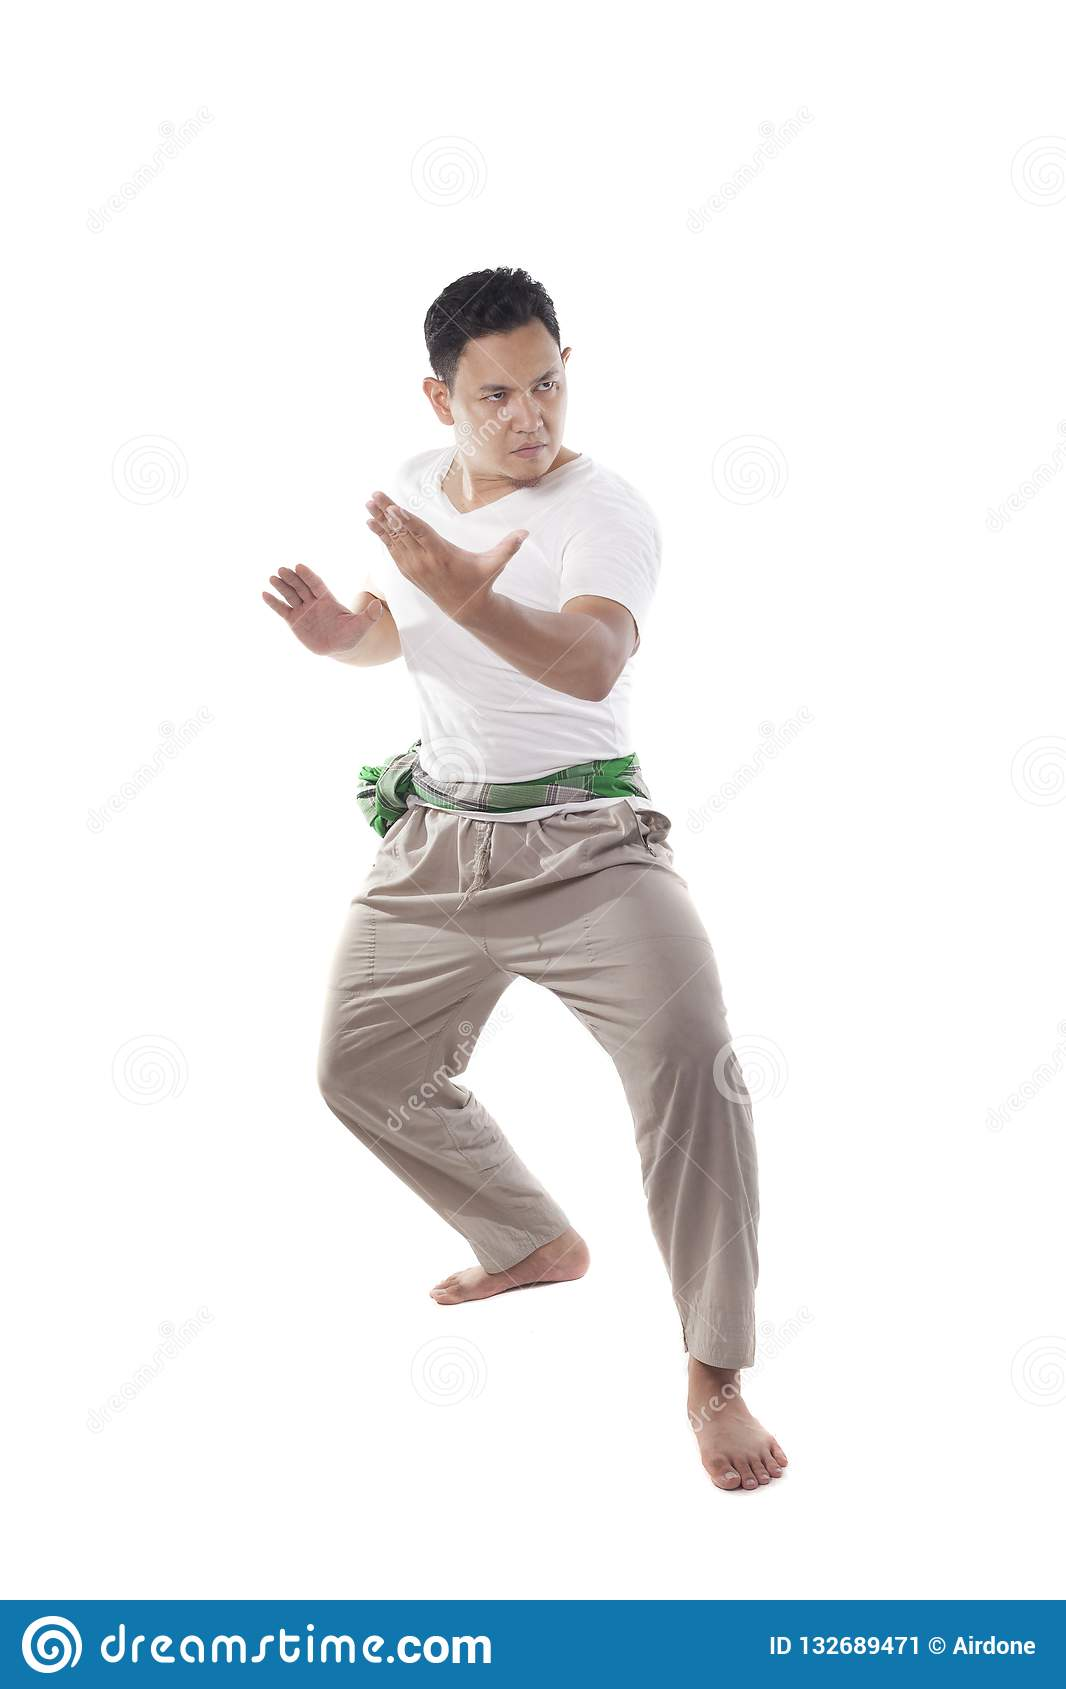 Foto Jurus Pencak Silat : jurus, pencak, silat, Pencak, Silat,, Indonesian, Traditional, Martial, Stock, Image, Indoors,, Discipline:, 132689471